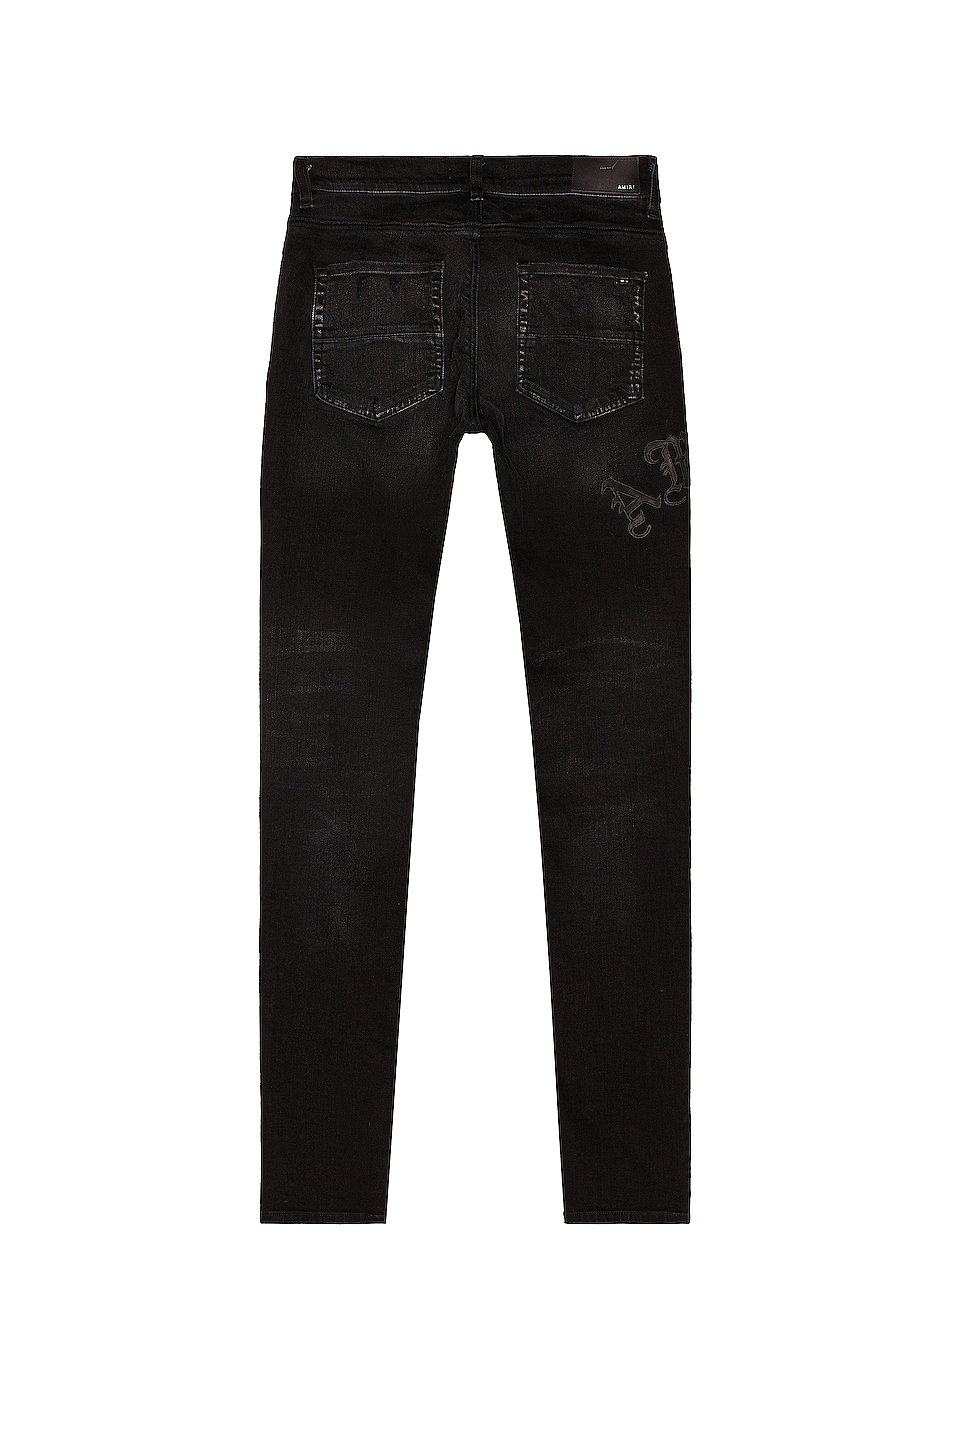 Amiri Old English Jean